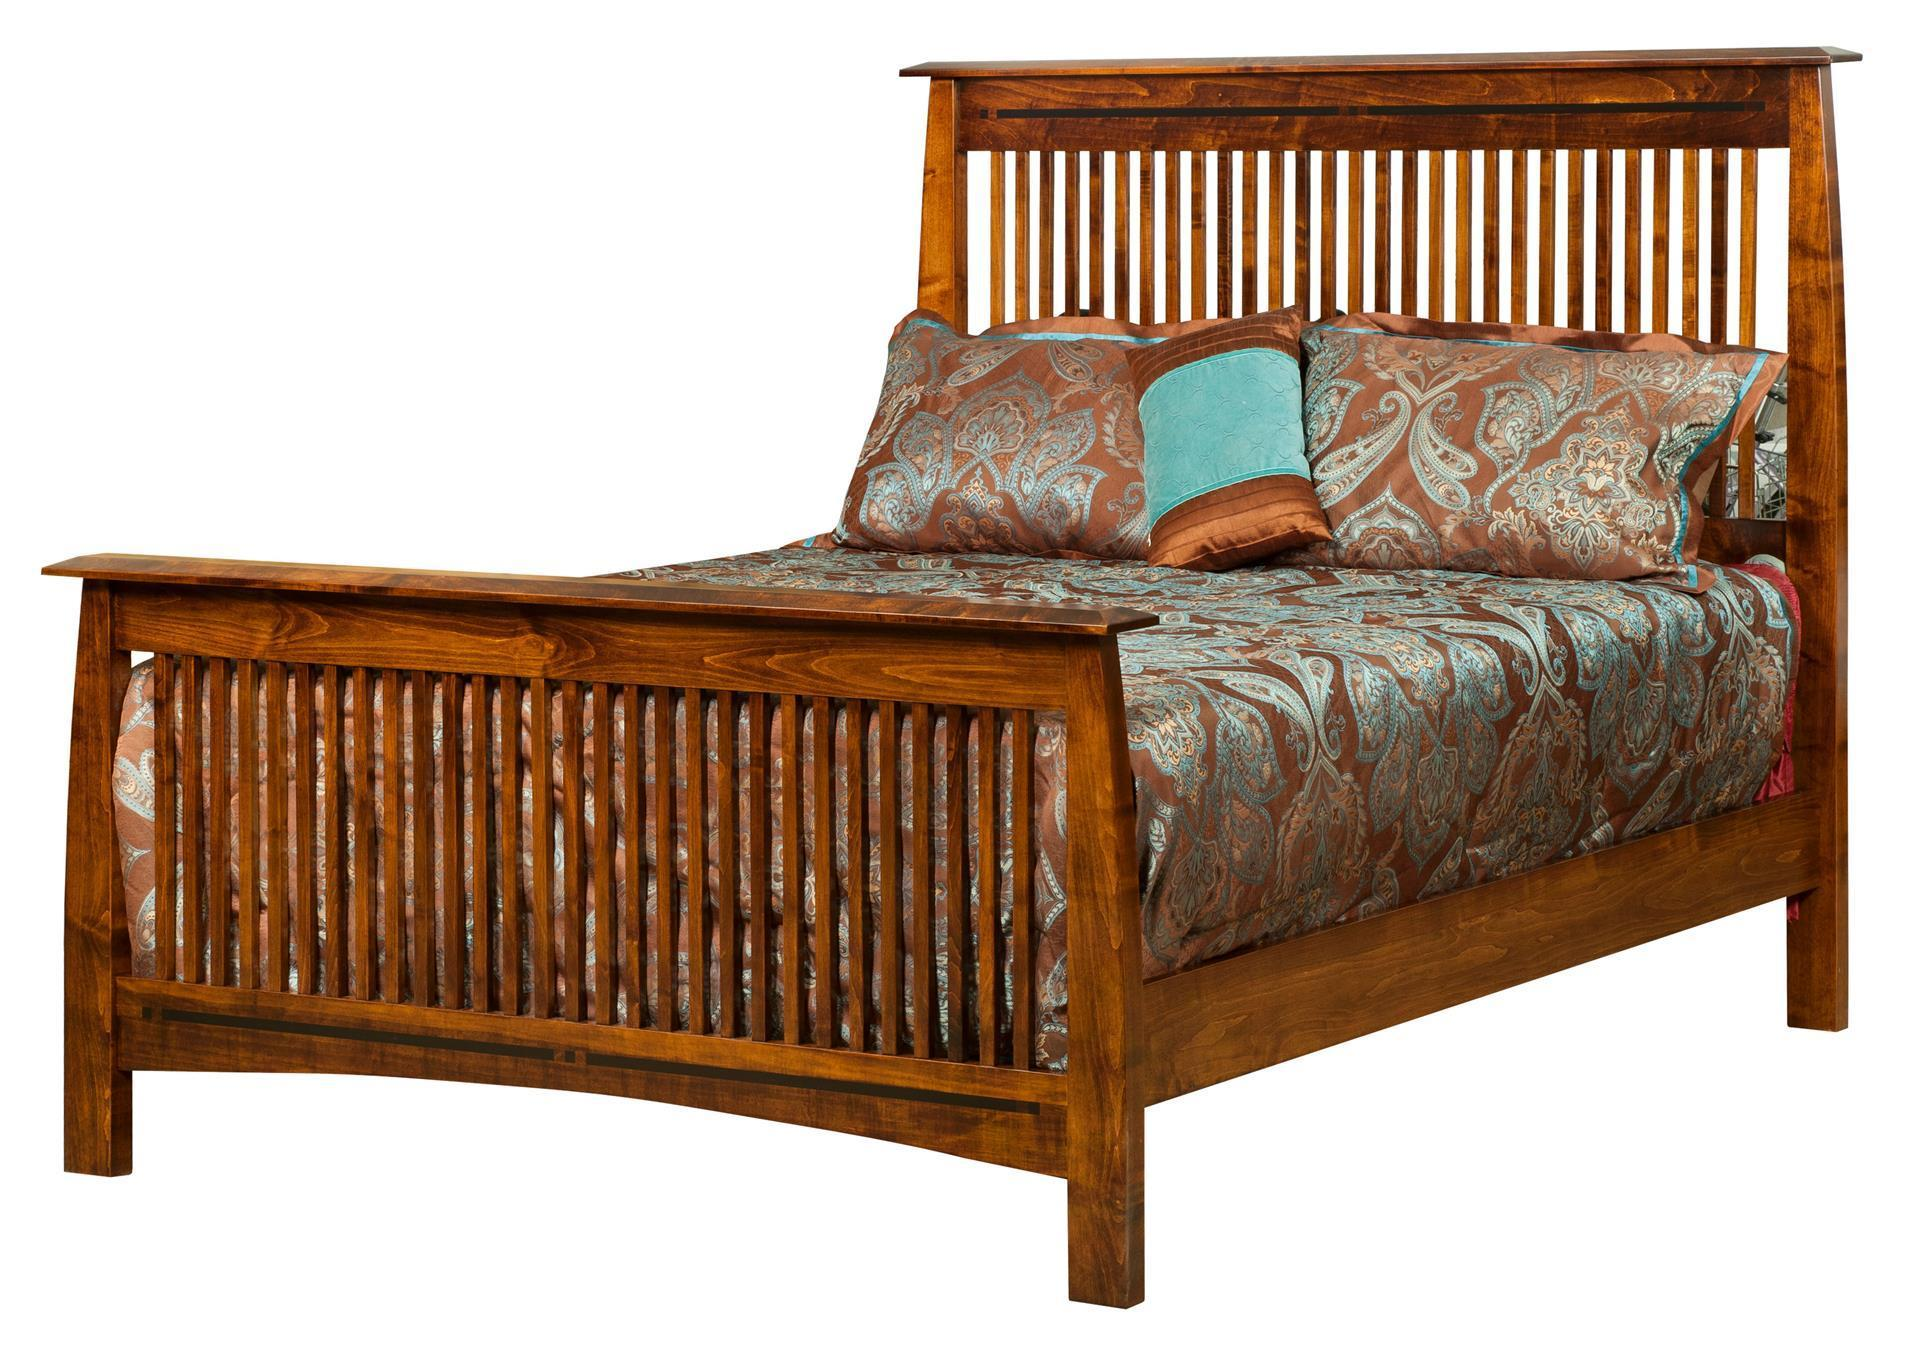 Amish Boulder Creek Mission Bed From Dutchcrafters Amish